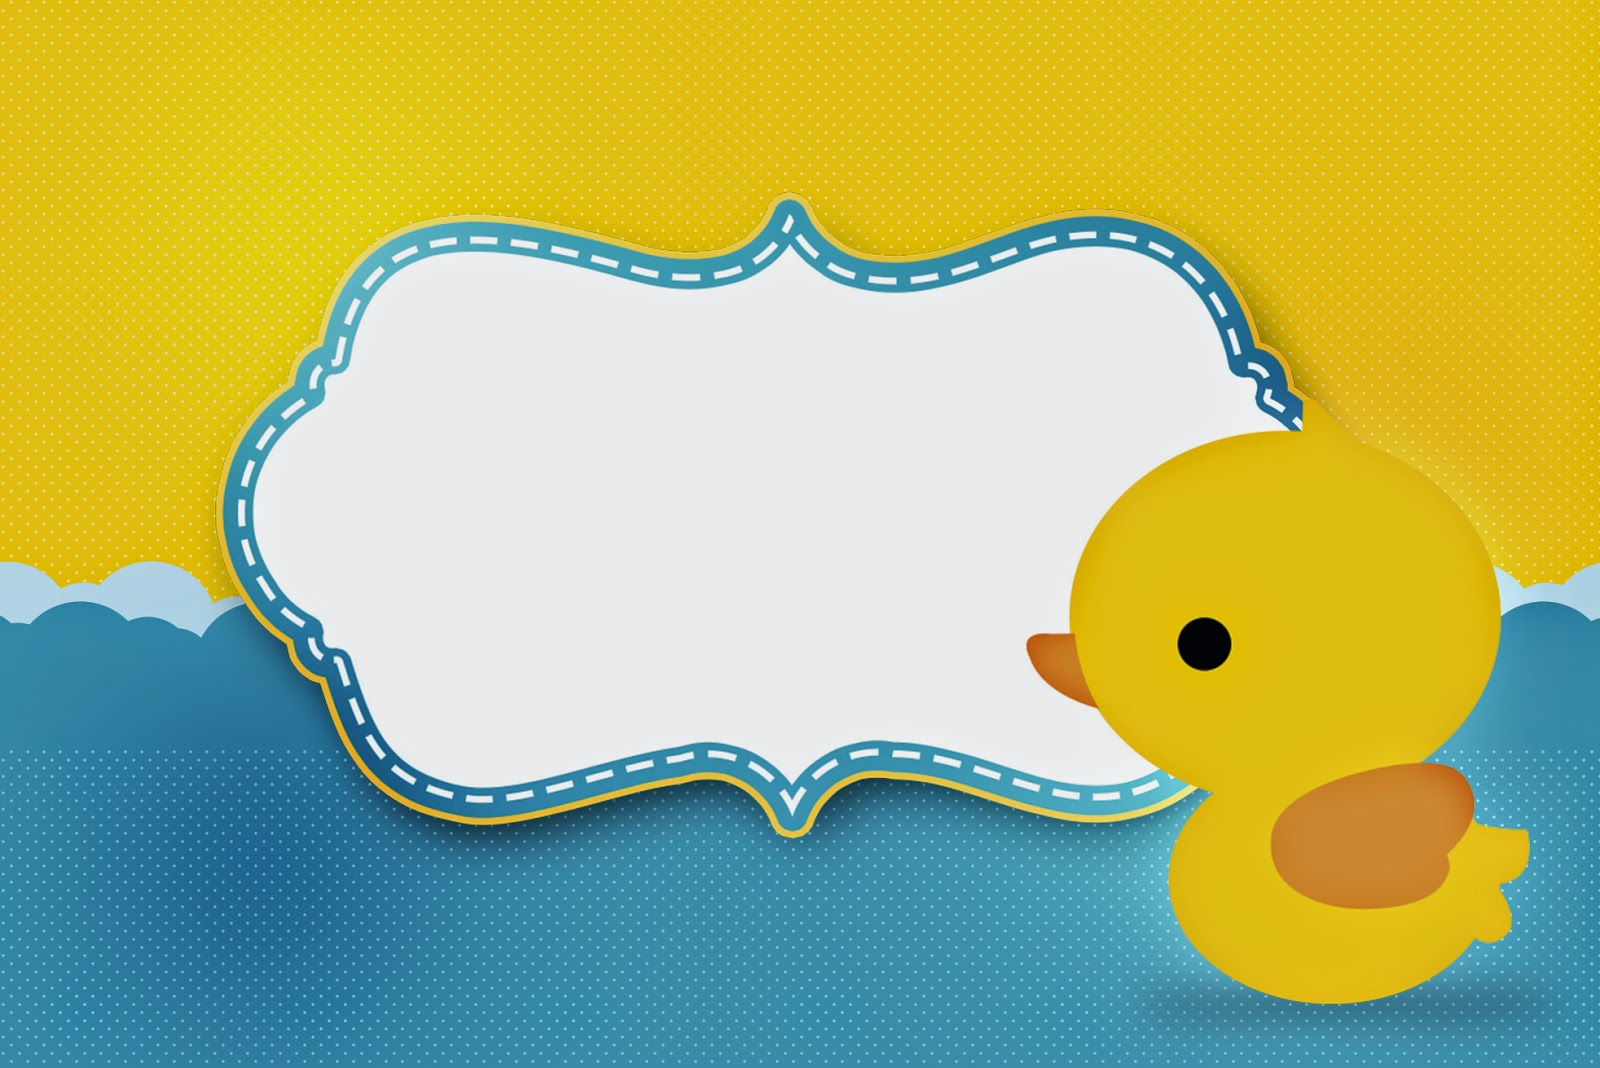 image about Rubber Ducky Printable named Rubber Ducky: Free of charge Printable Invites. - Oh My Fiesta! within